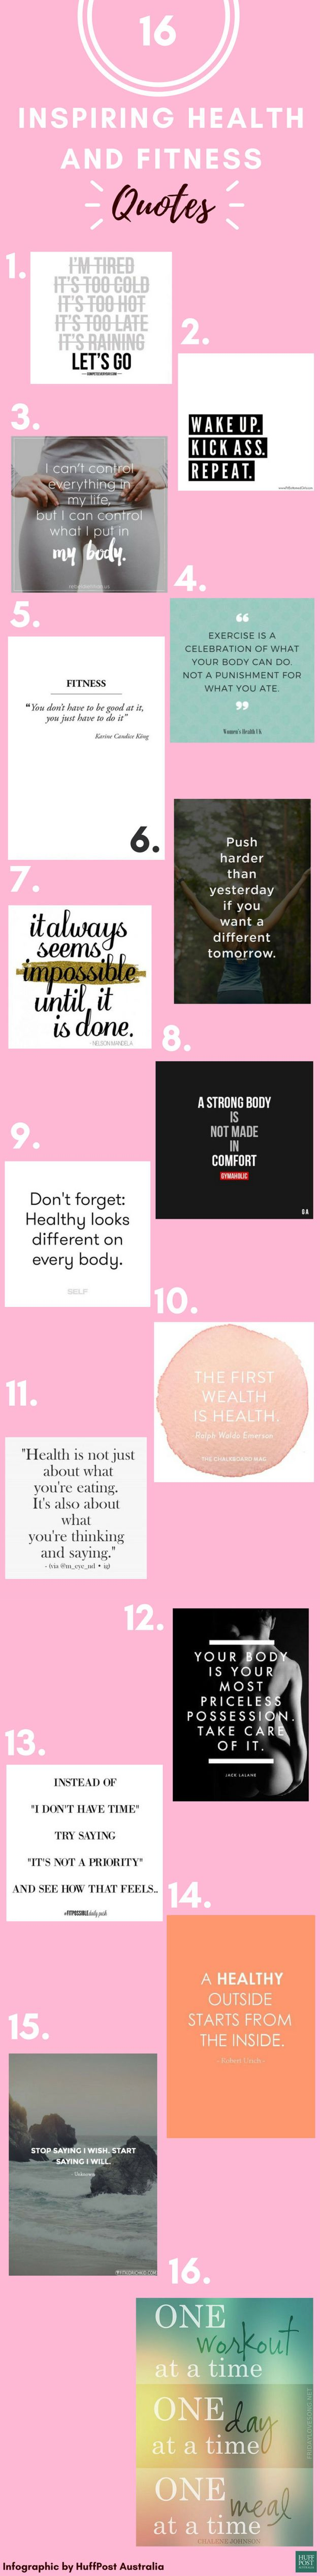 16 Inspiring Health And Fitness Quotes To Help You Stay On ...